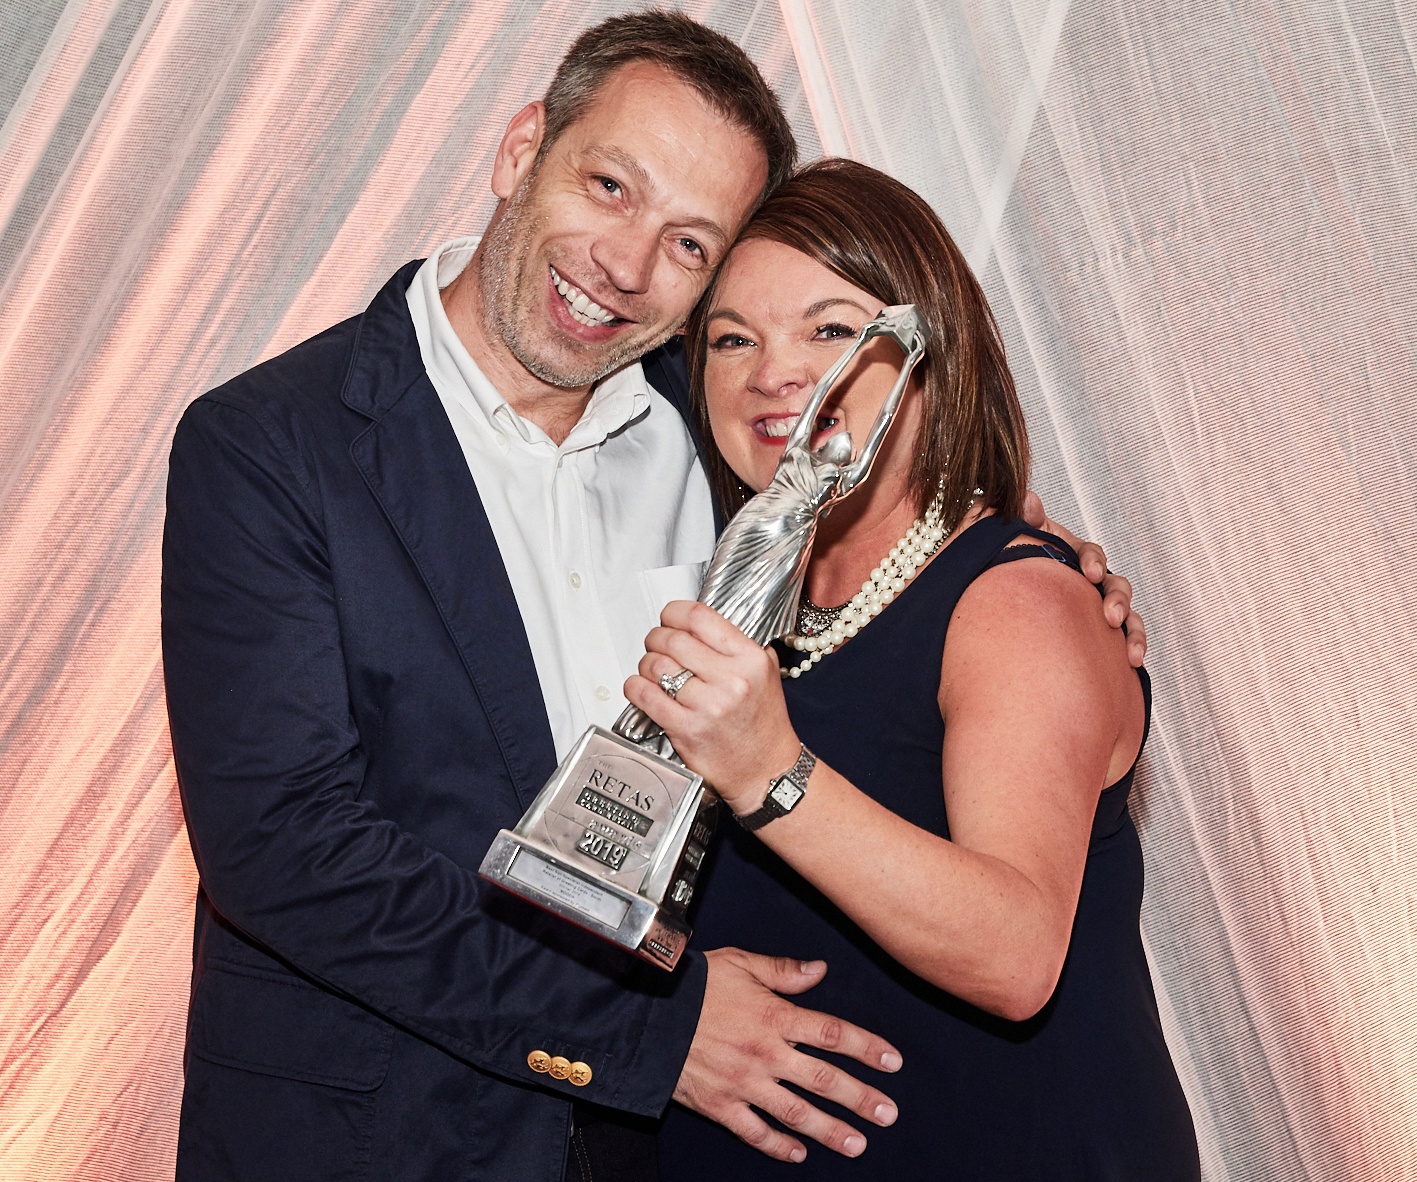 Above: Rachel and Paul Roberts with their Retas' trophy at last July's awards event.